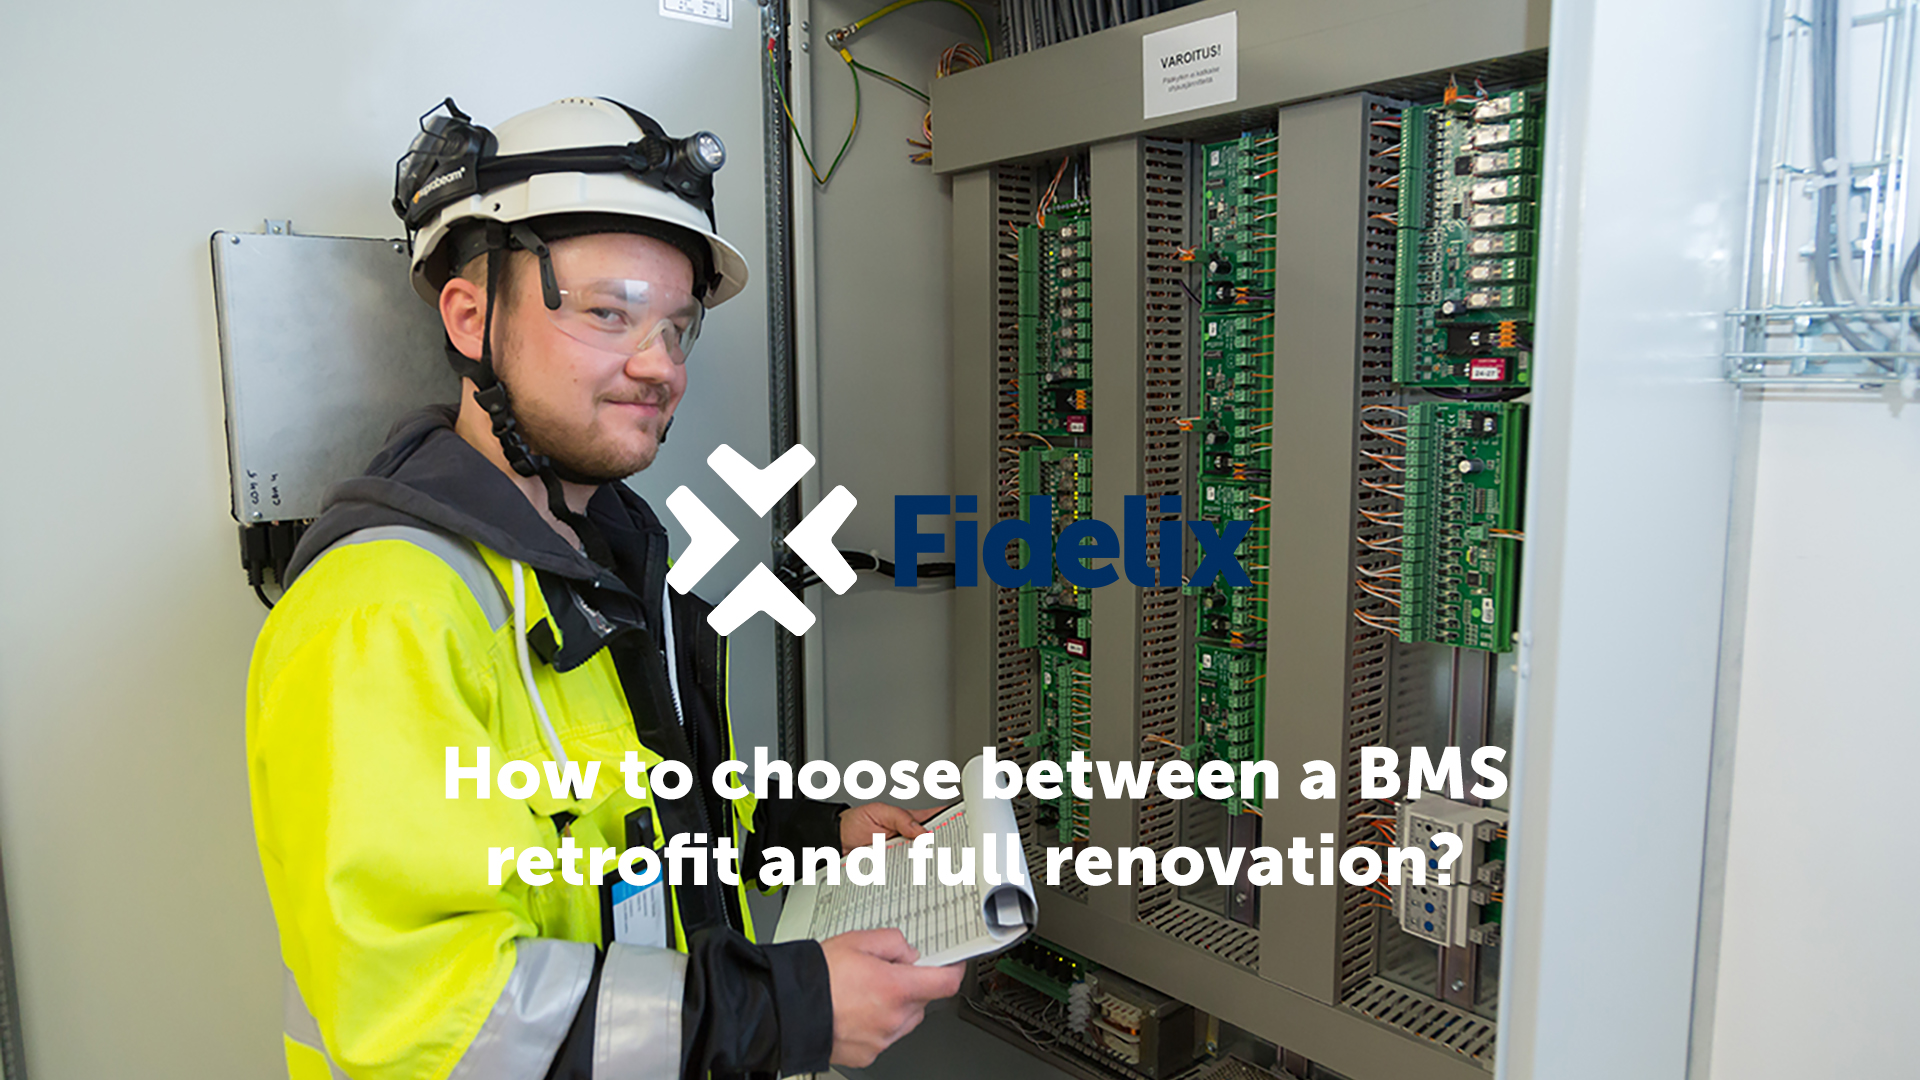 How to choose between a BMS retrofit and full renovation?